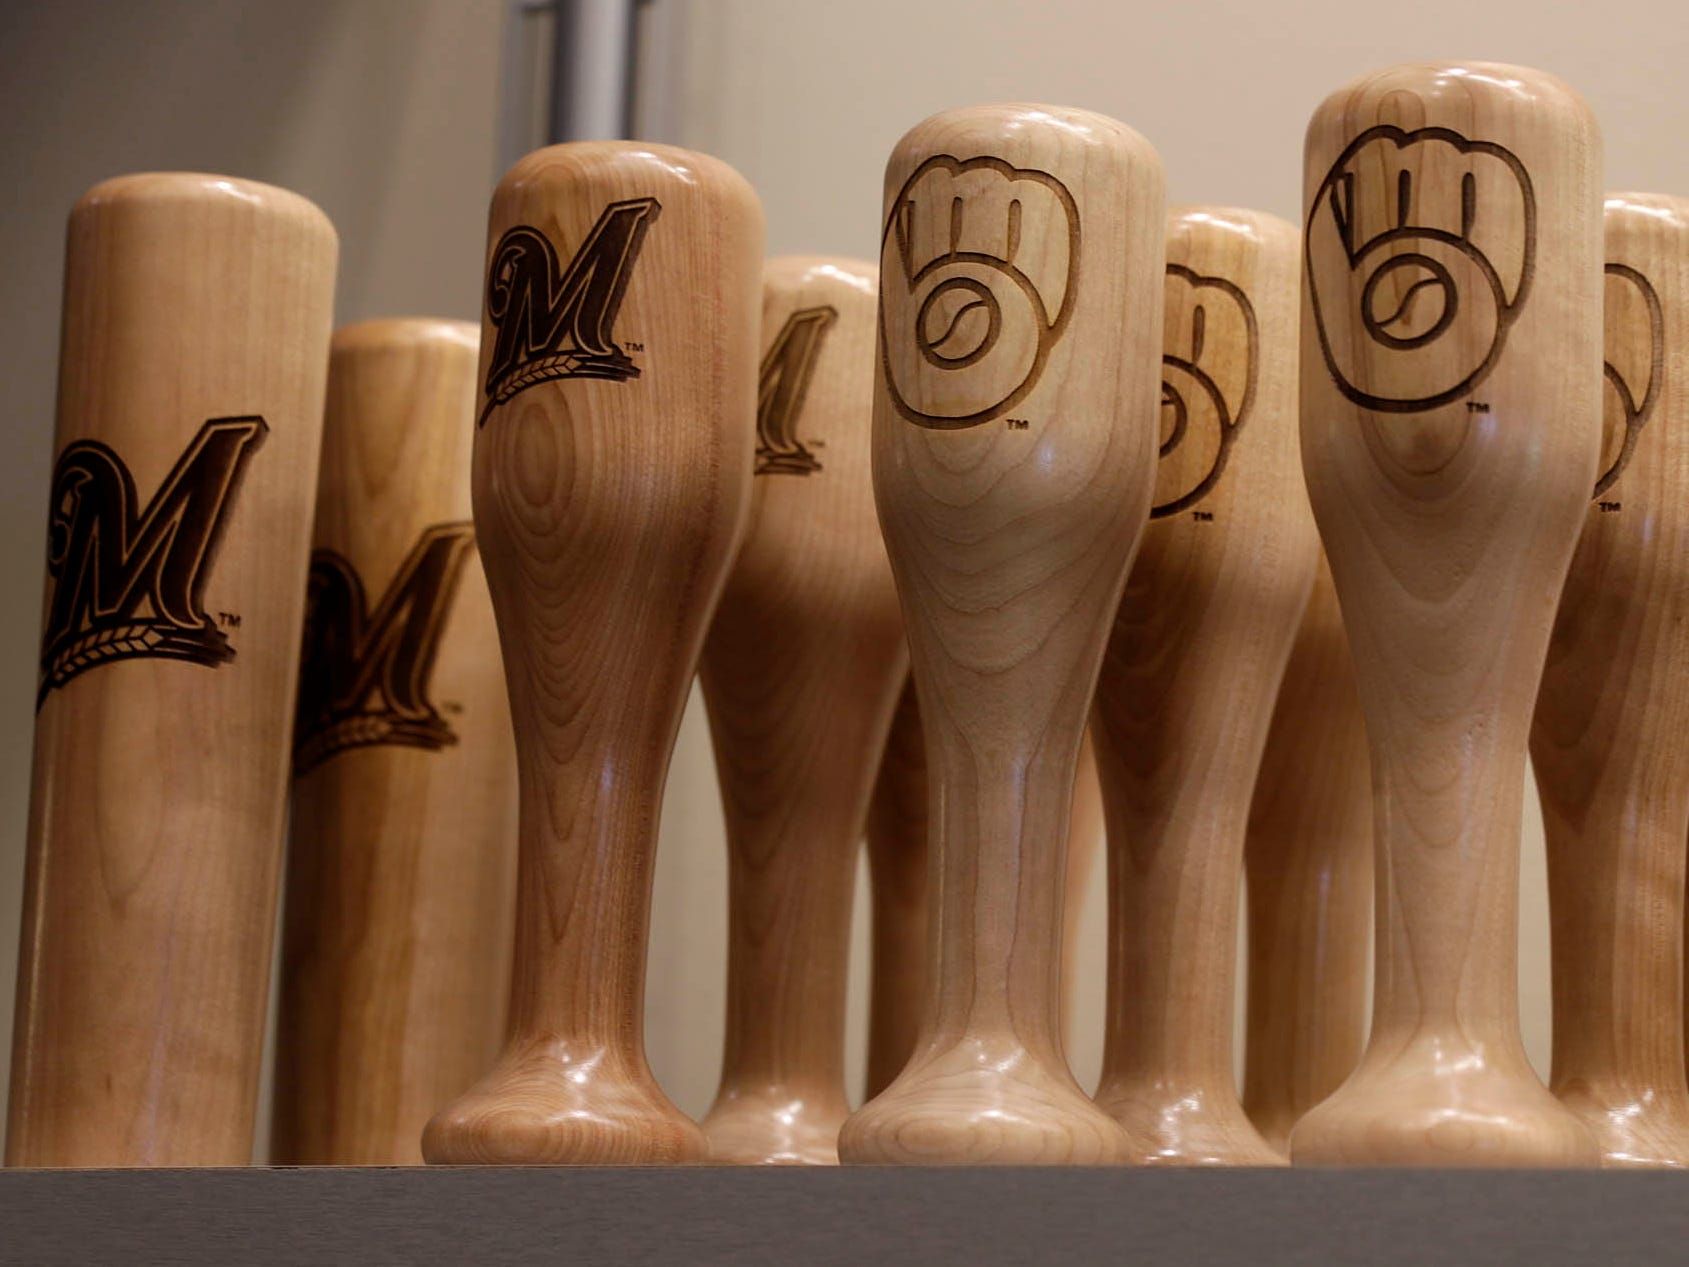 Drink mugs made from hollowed out bats are one of the new items for sale at the Milwaukee Brewers team store at Miller Park.